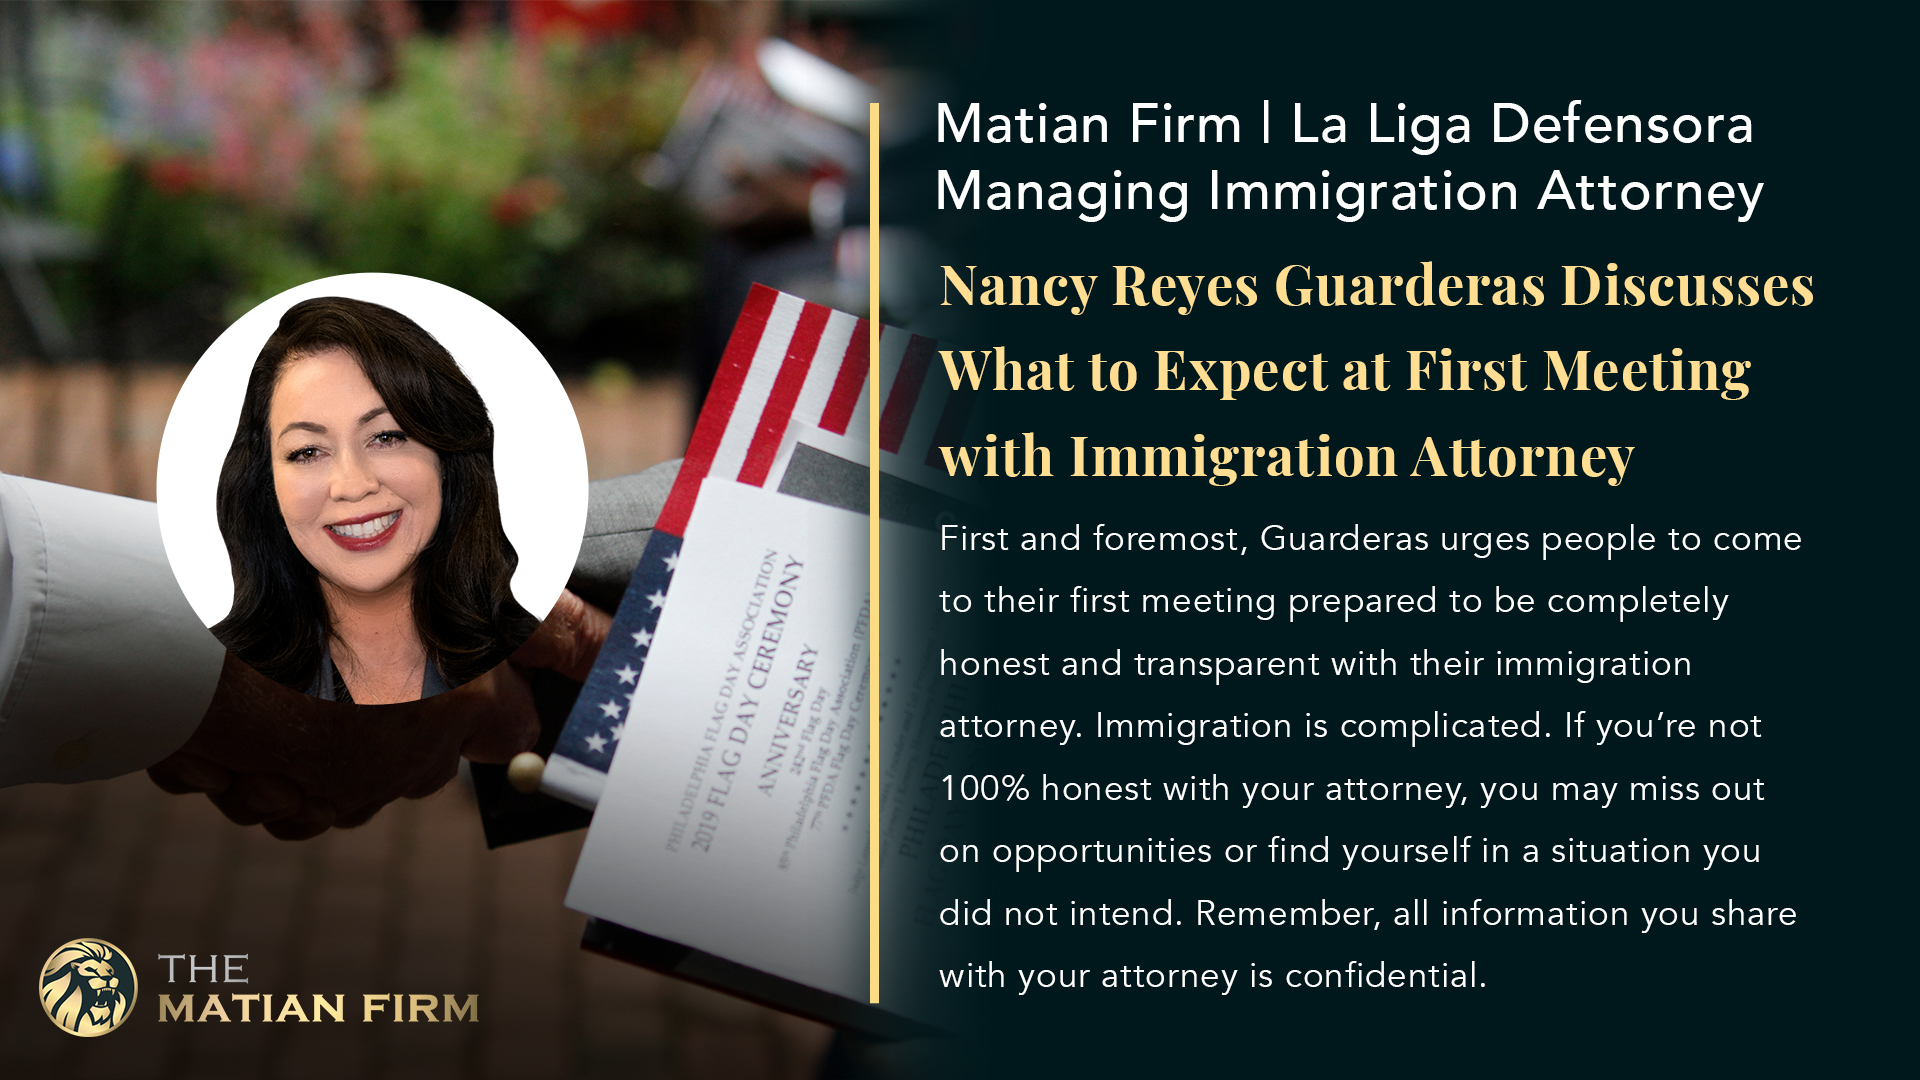 Matian Firm | La Liga Defensora Managing Immigration Attorney Nancy Reyes Guarderas Discusses What to Expect at First Meeting with Immigration Attorney